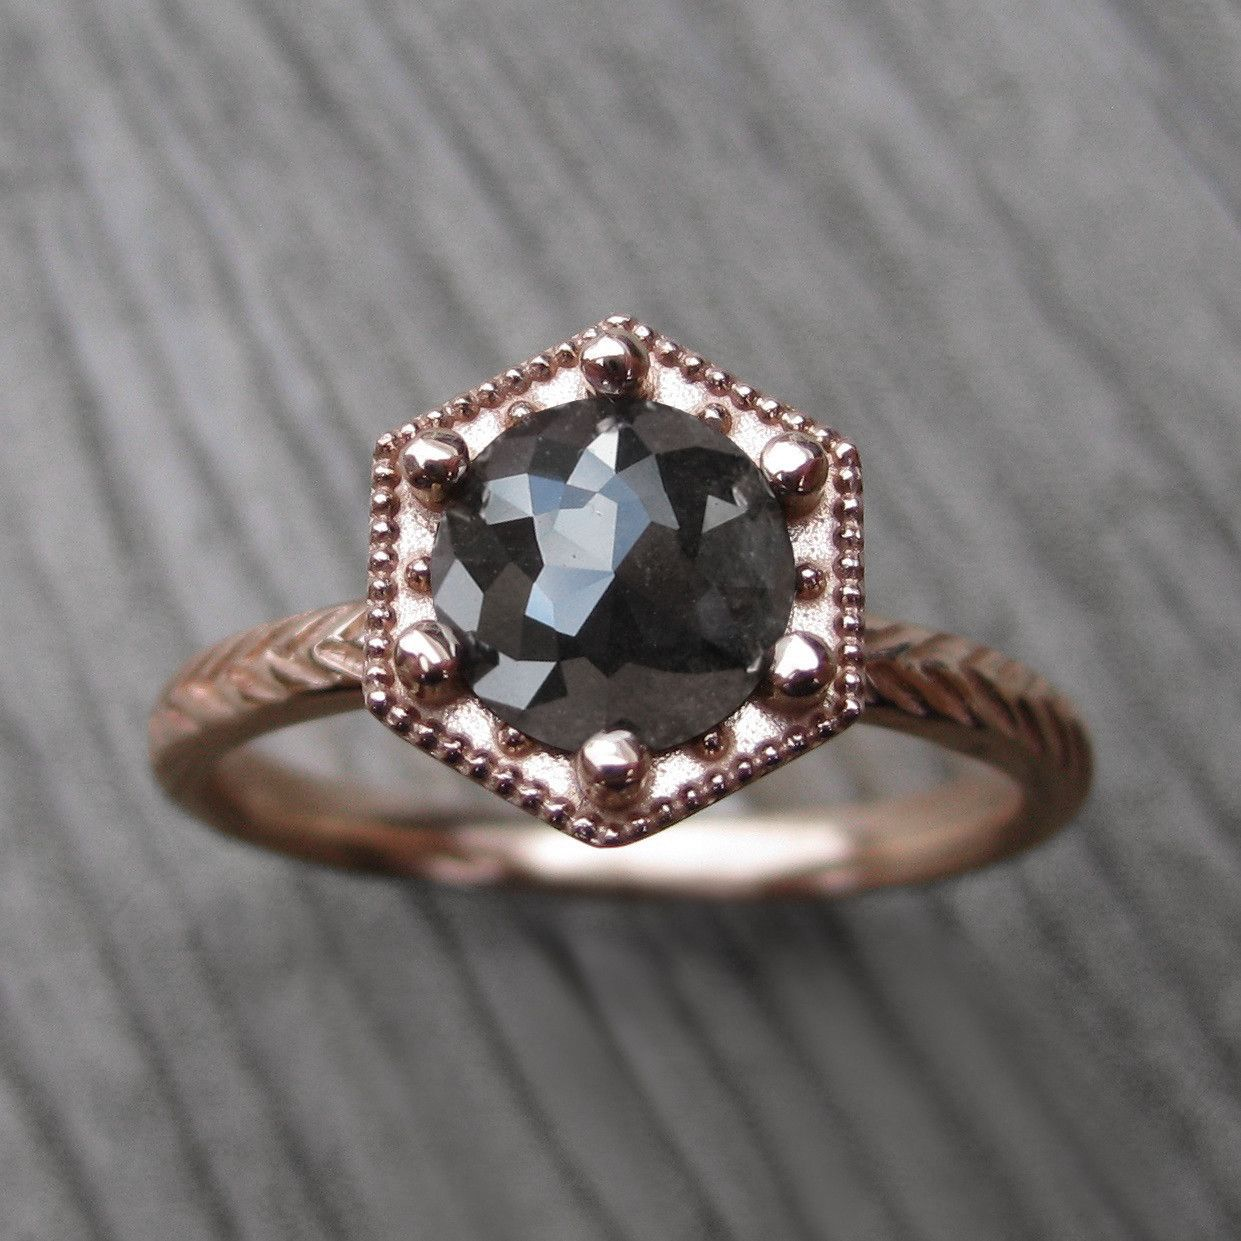 pave kristin blue jewelry ring engagement coffin ps mod shank lighter rings v gray grey products moissanite less camille center band diamond wedding icon